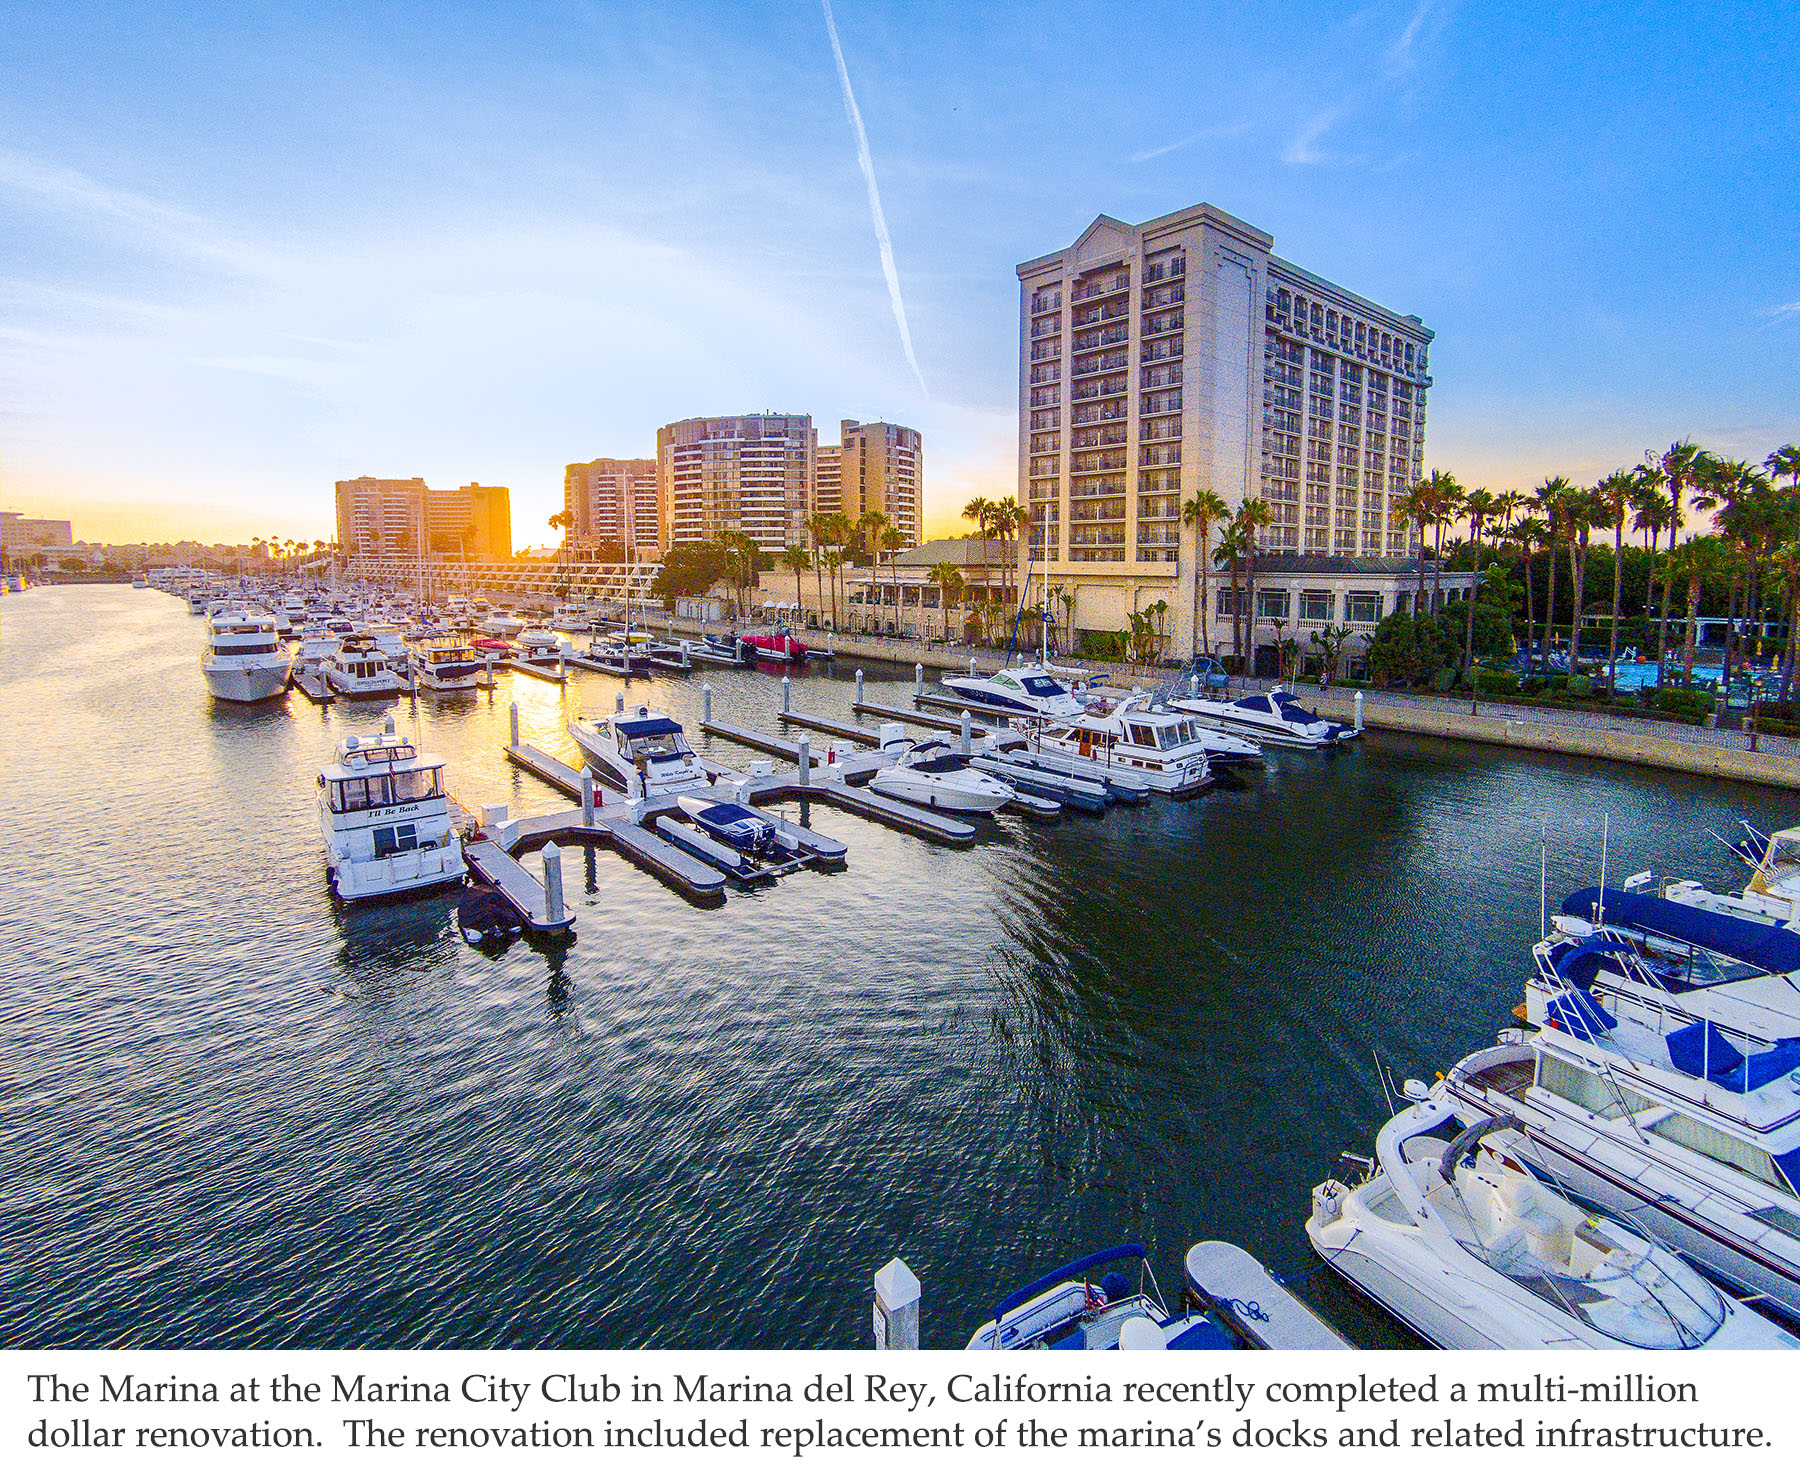 The Marina at the Marina City Club recently upgraded their dock system to included concrete floating docks from Bellingham Marine